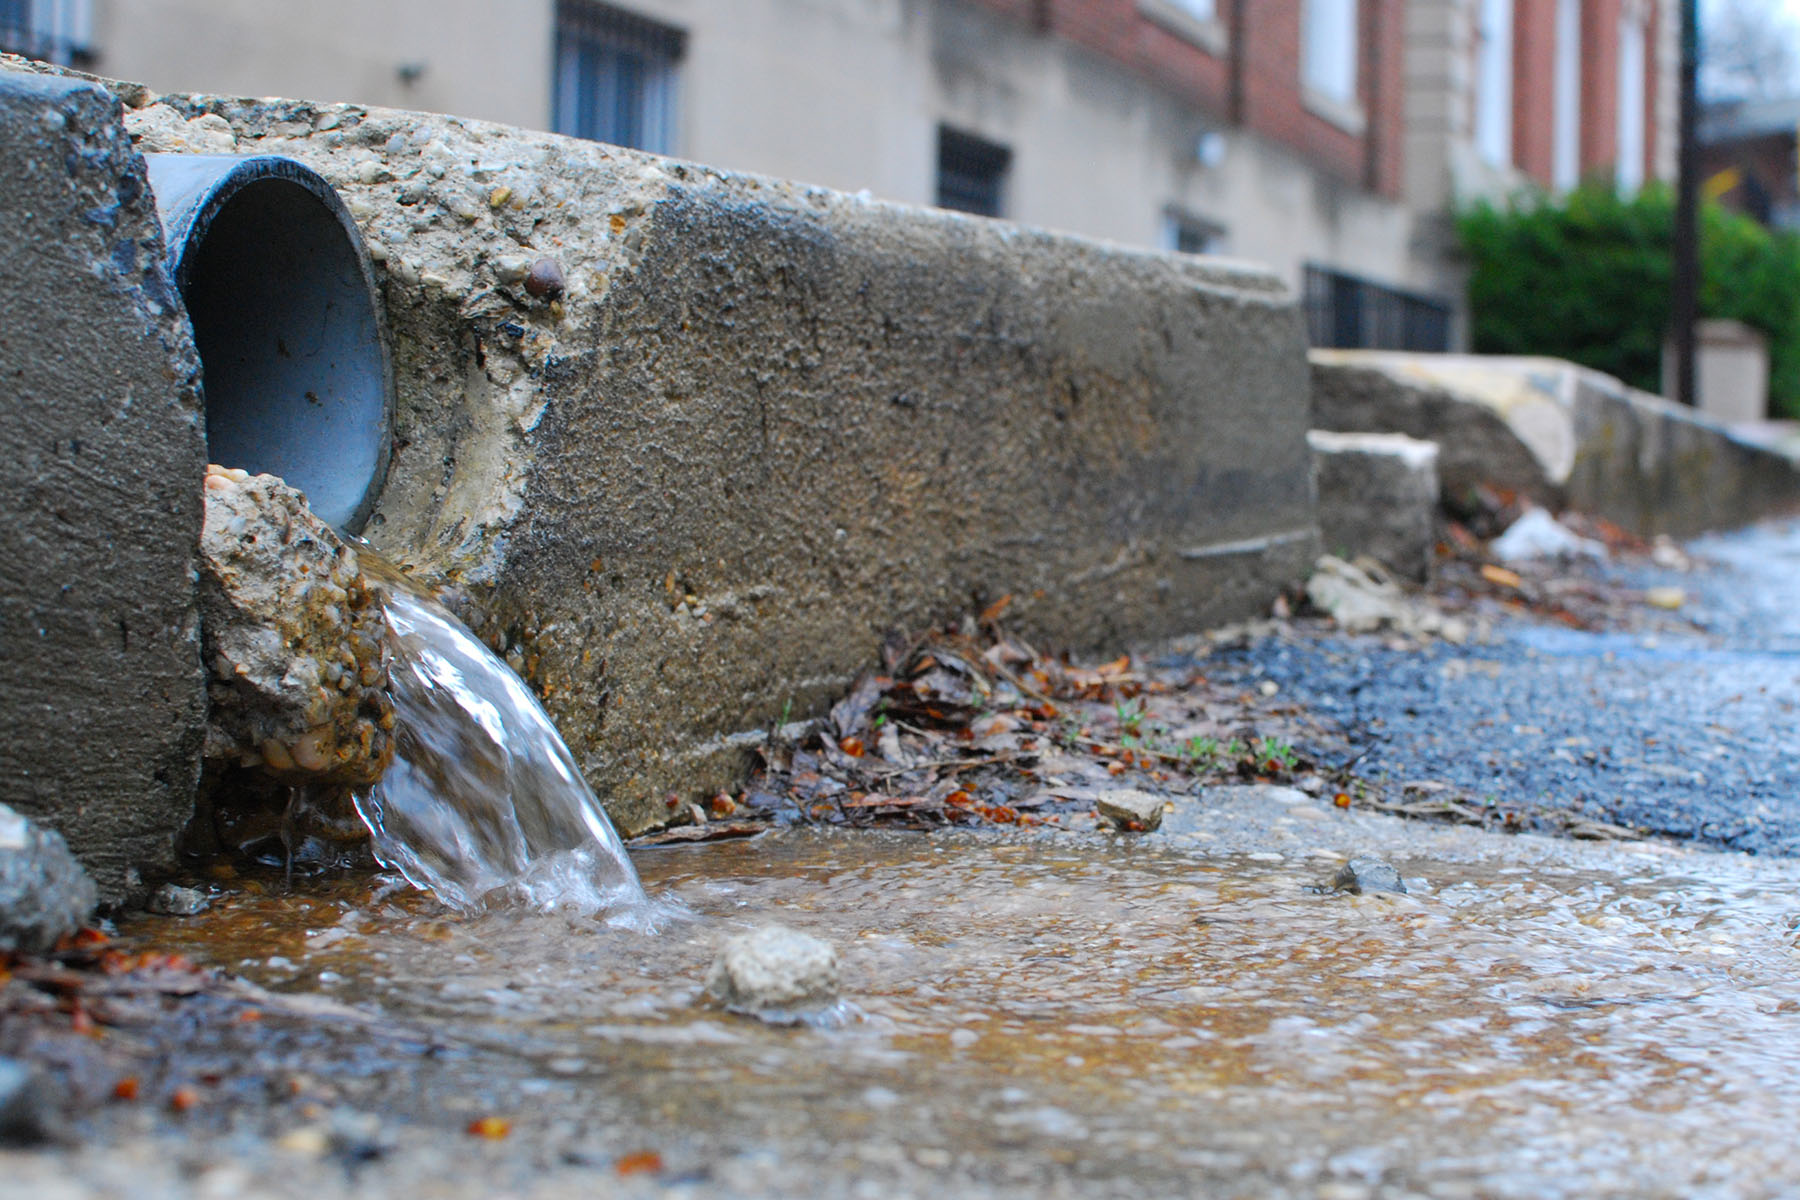 06.17_stormwater_issues_image